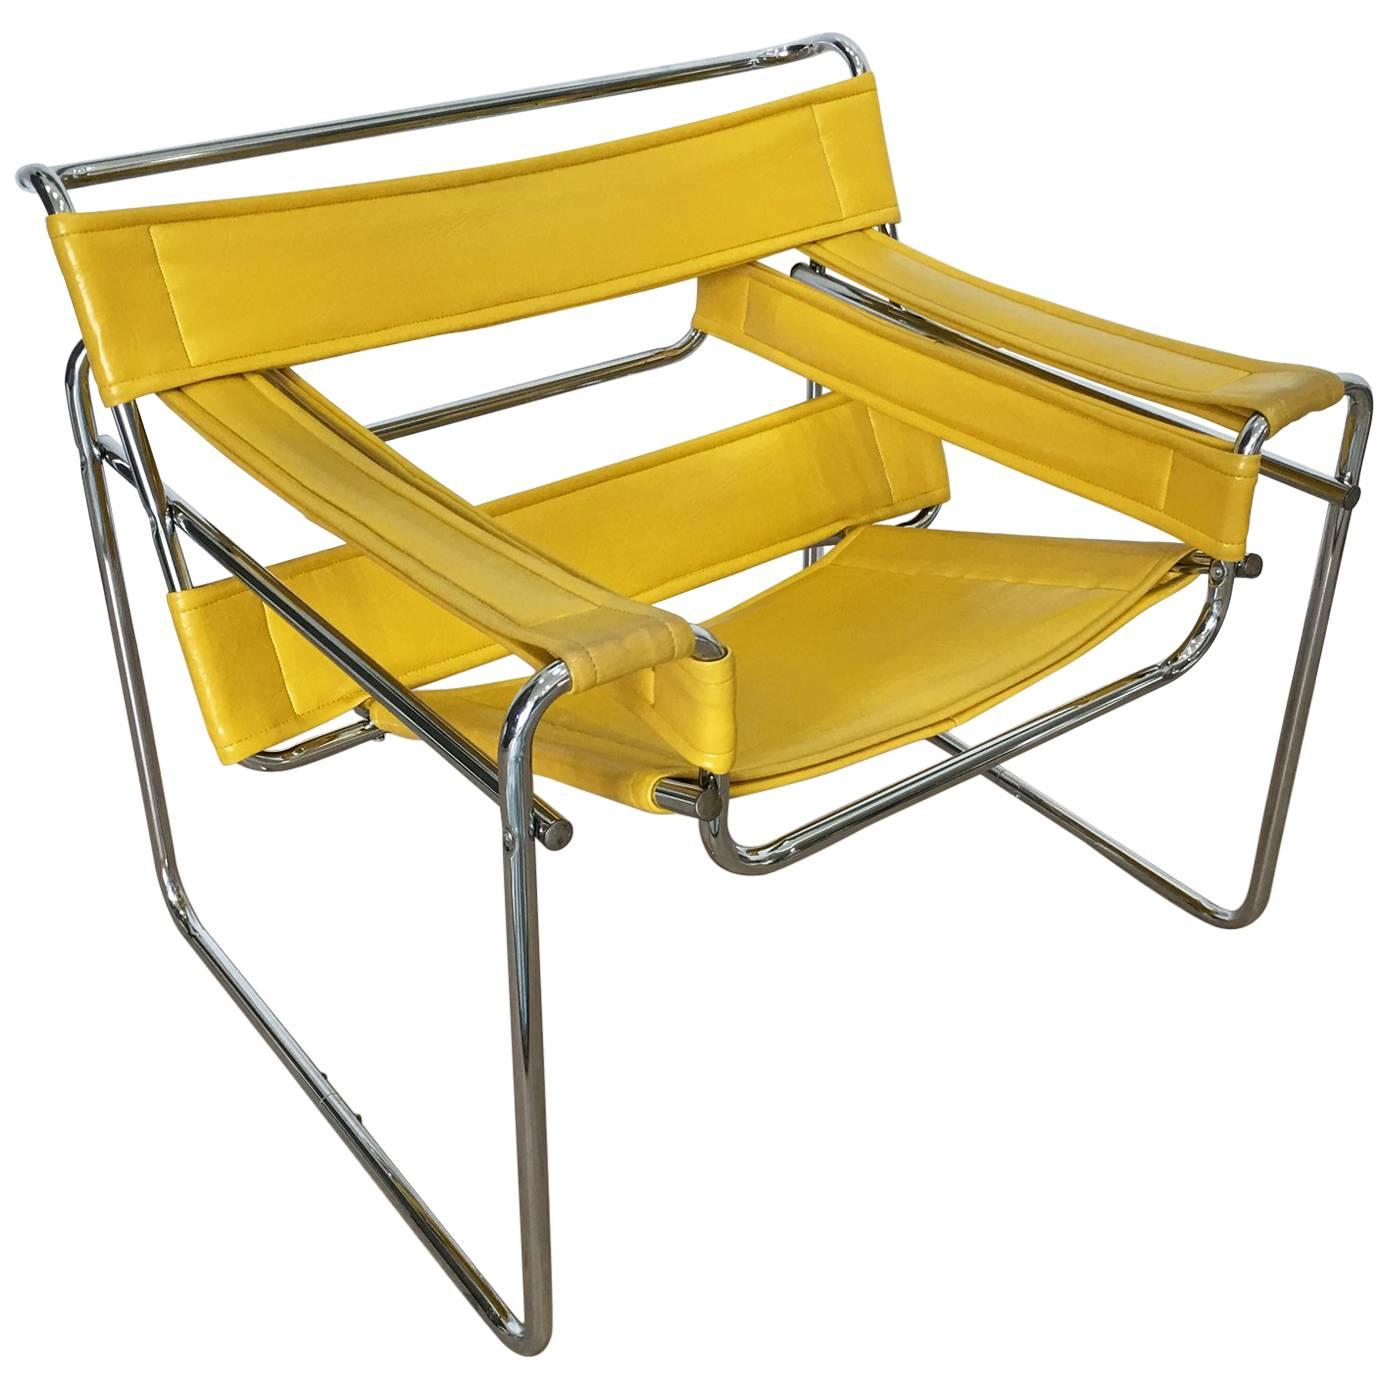 Yellow leather chair Tub Marcel Breuer Wassily Style Yellow Faux Leather And Steel Chair Armchair For Sale 1stdibs Marcel Breuer Wassily Style Yellow Faux Leather And Steel Chair